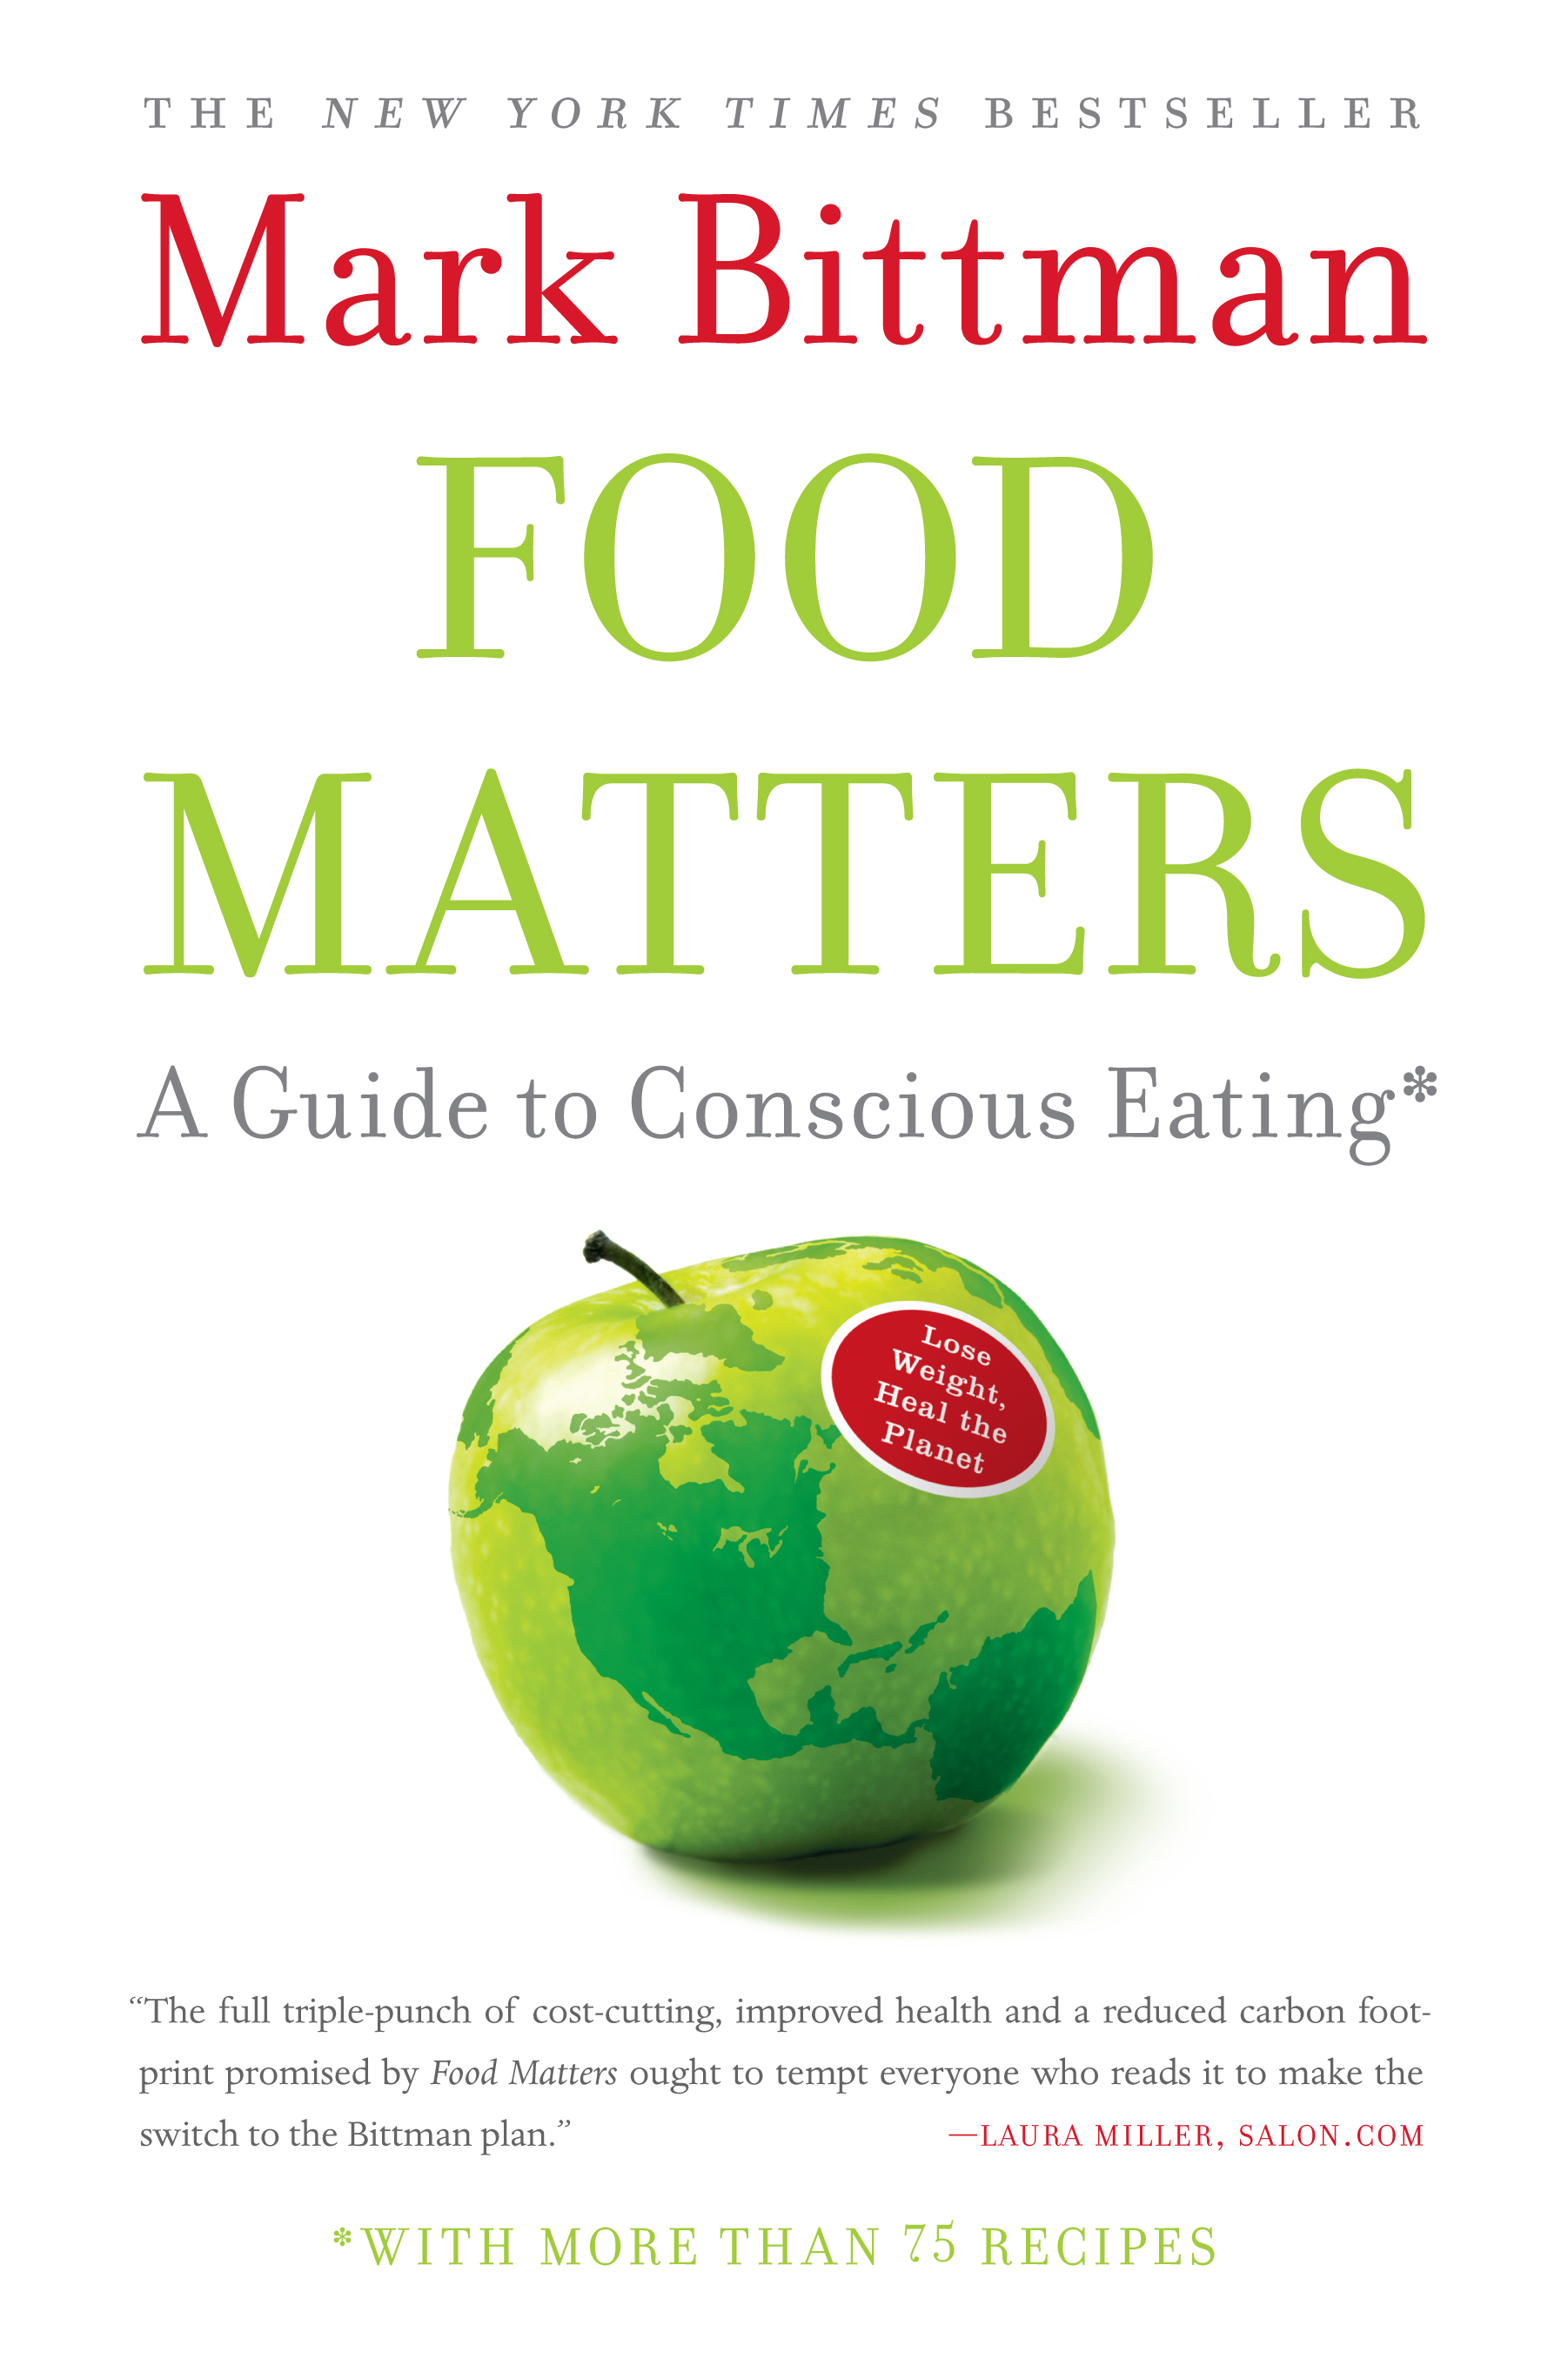 Food matters book by mark bittman official publisher page a guide to conscious eating with more than 75 recipes food matters forumfinder Choice Image